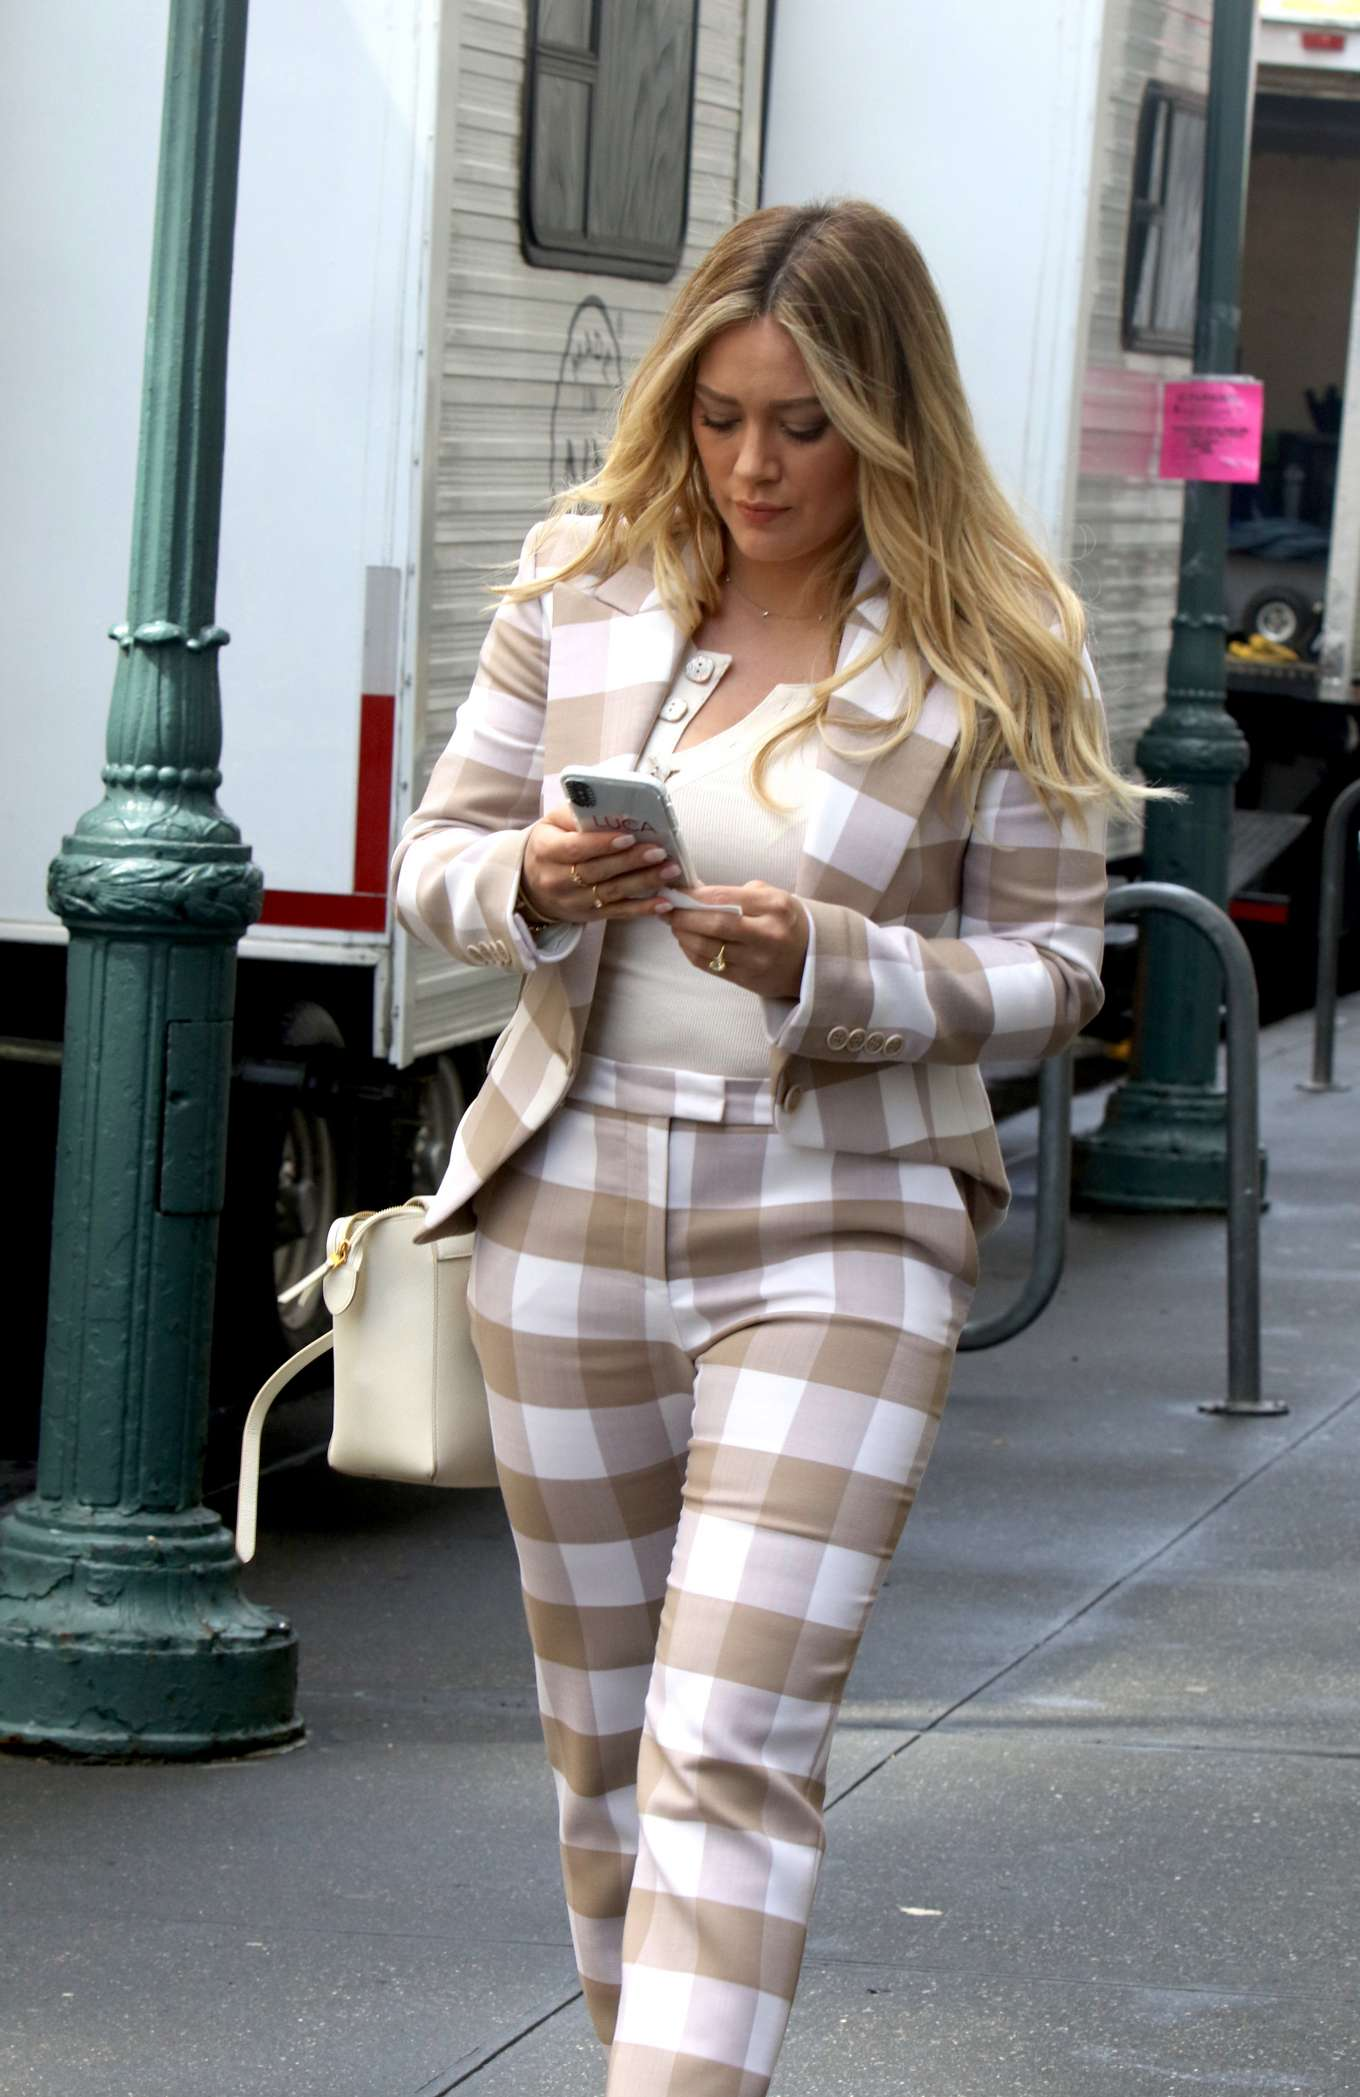 Hilary Duff 2019 : Hilary Duff: On the set of Younger in NYC -04